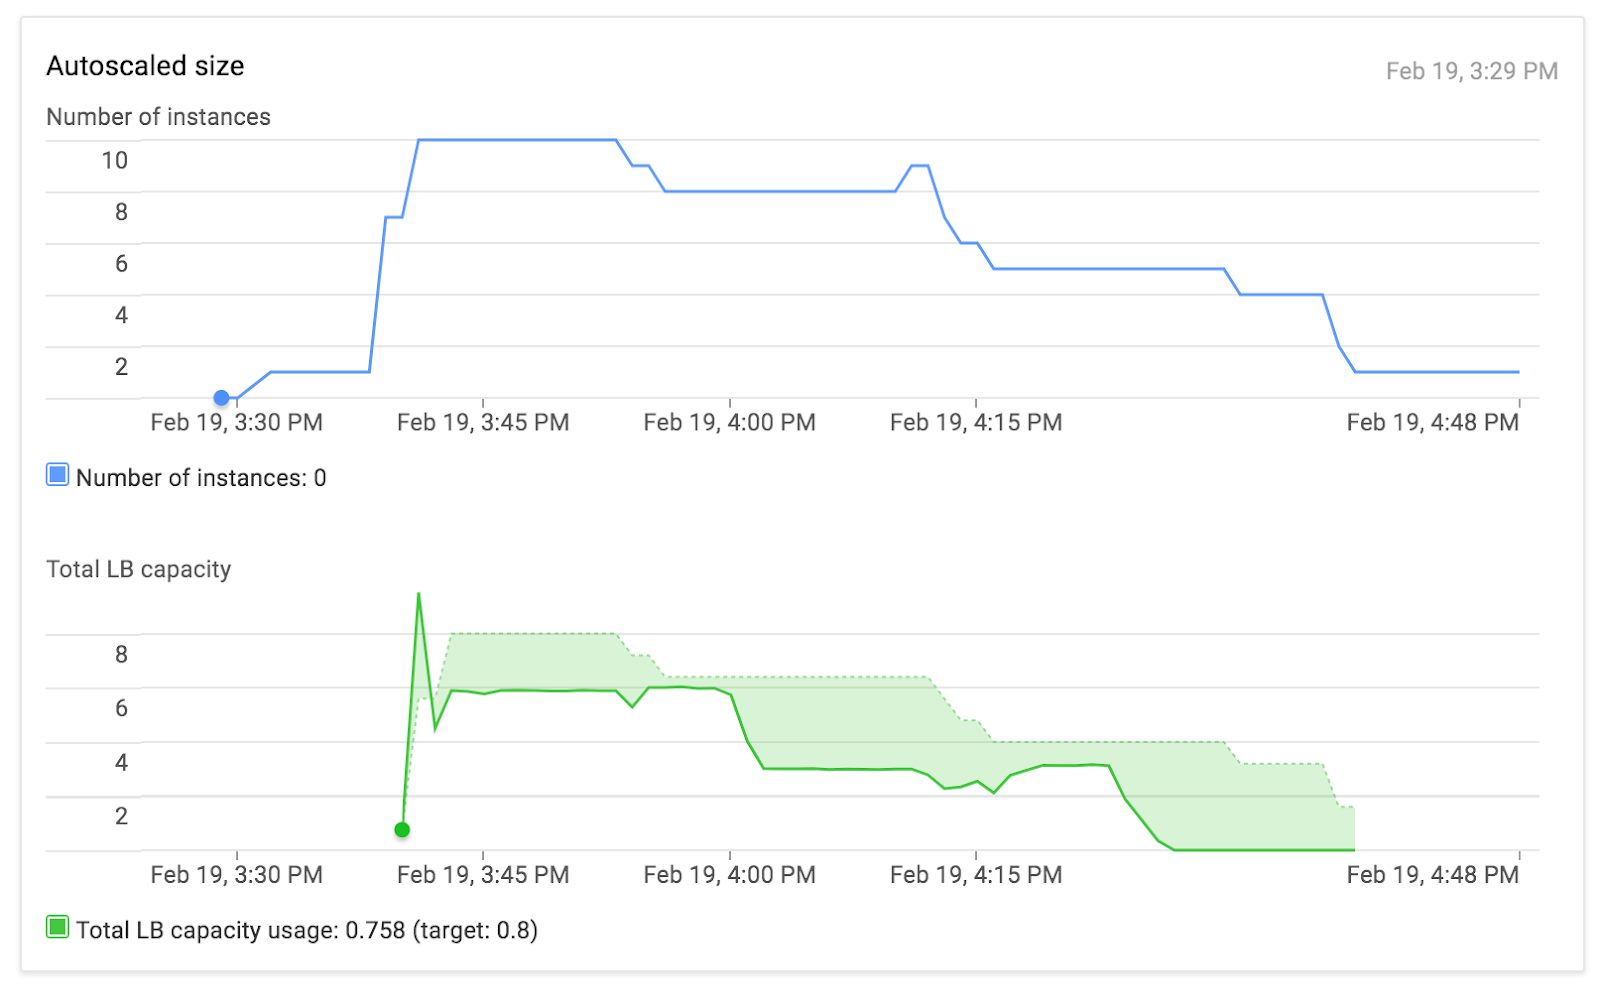 Http To Https Using Google Cloud Load Balancer Real Kinetic Blog Remote Starter Wiring Diagrams Group Picture Image By Tag This Graph Is Available From The Instance Page On Console